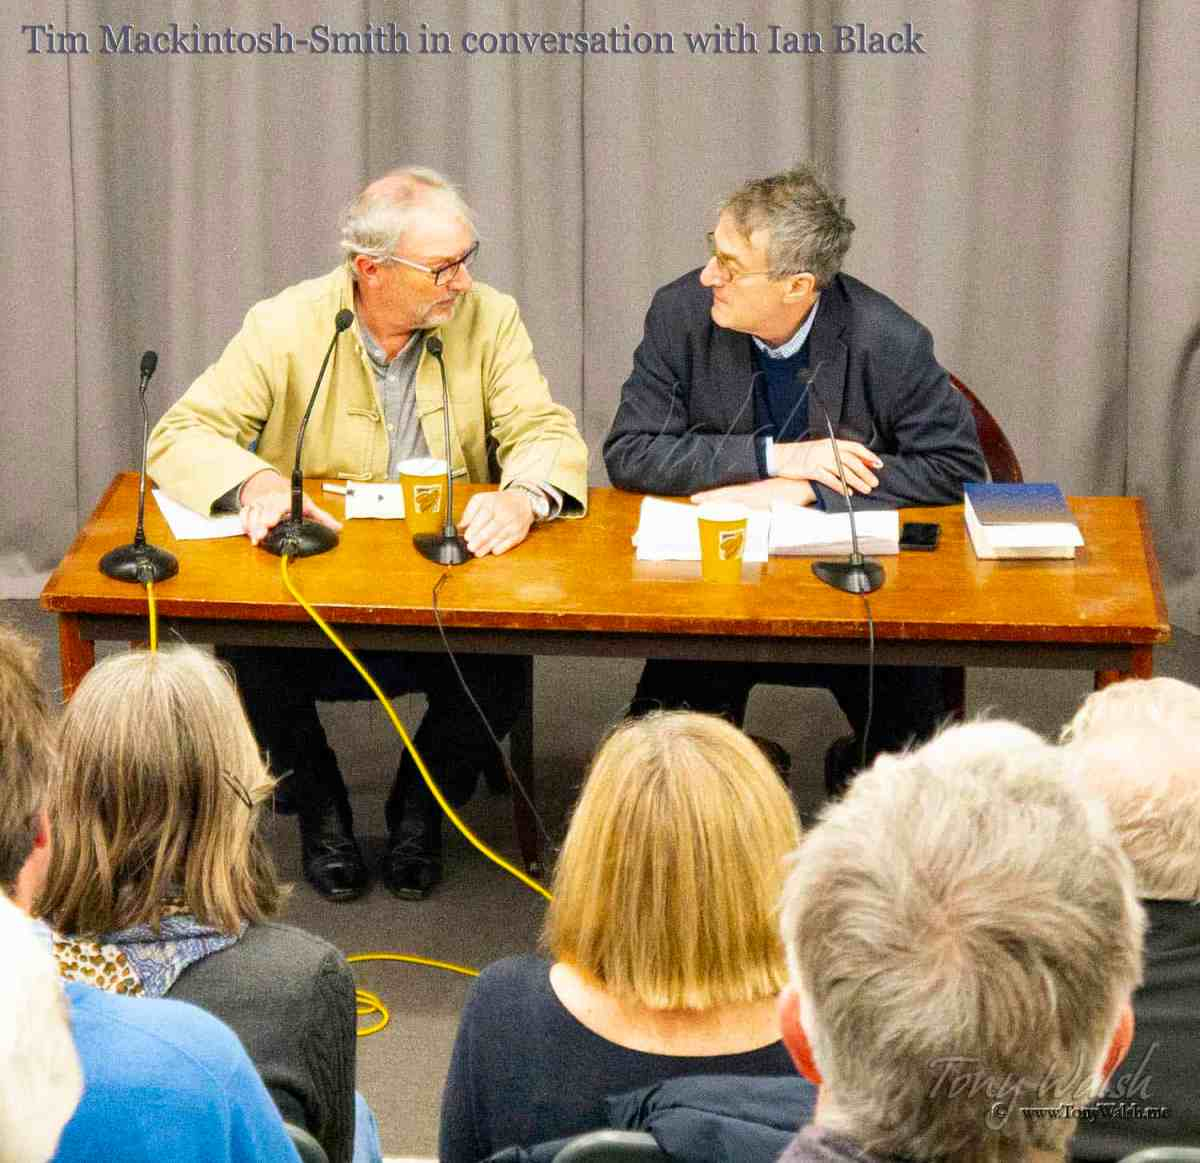 Tim Mackintosh-Smith in conversation with Ian Black